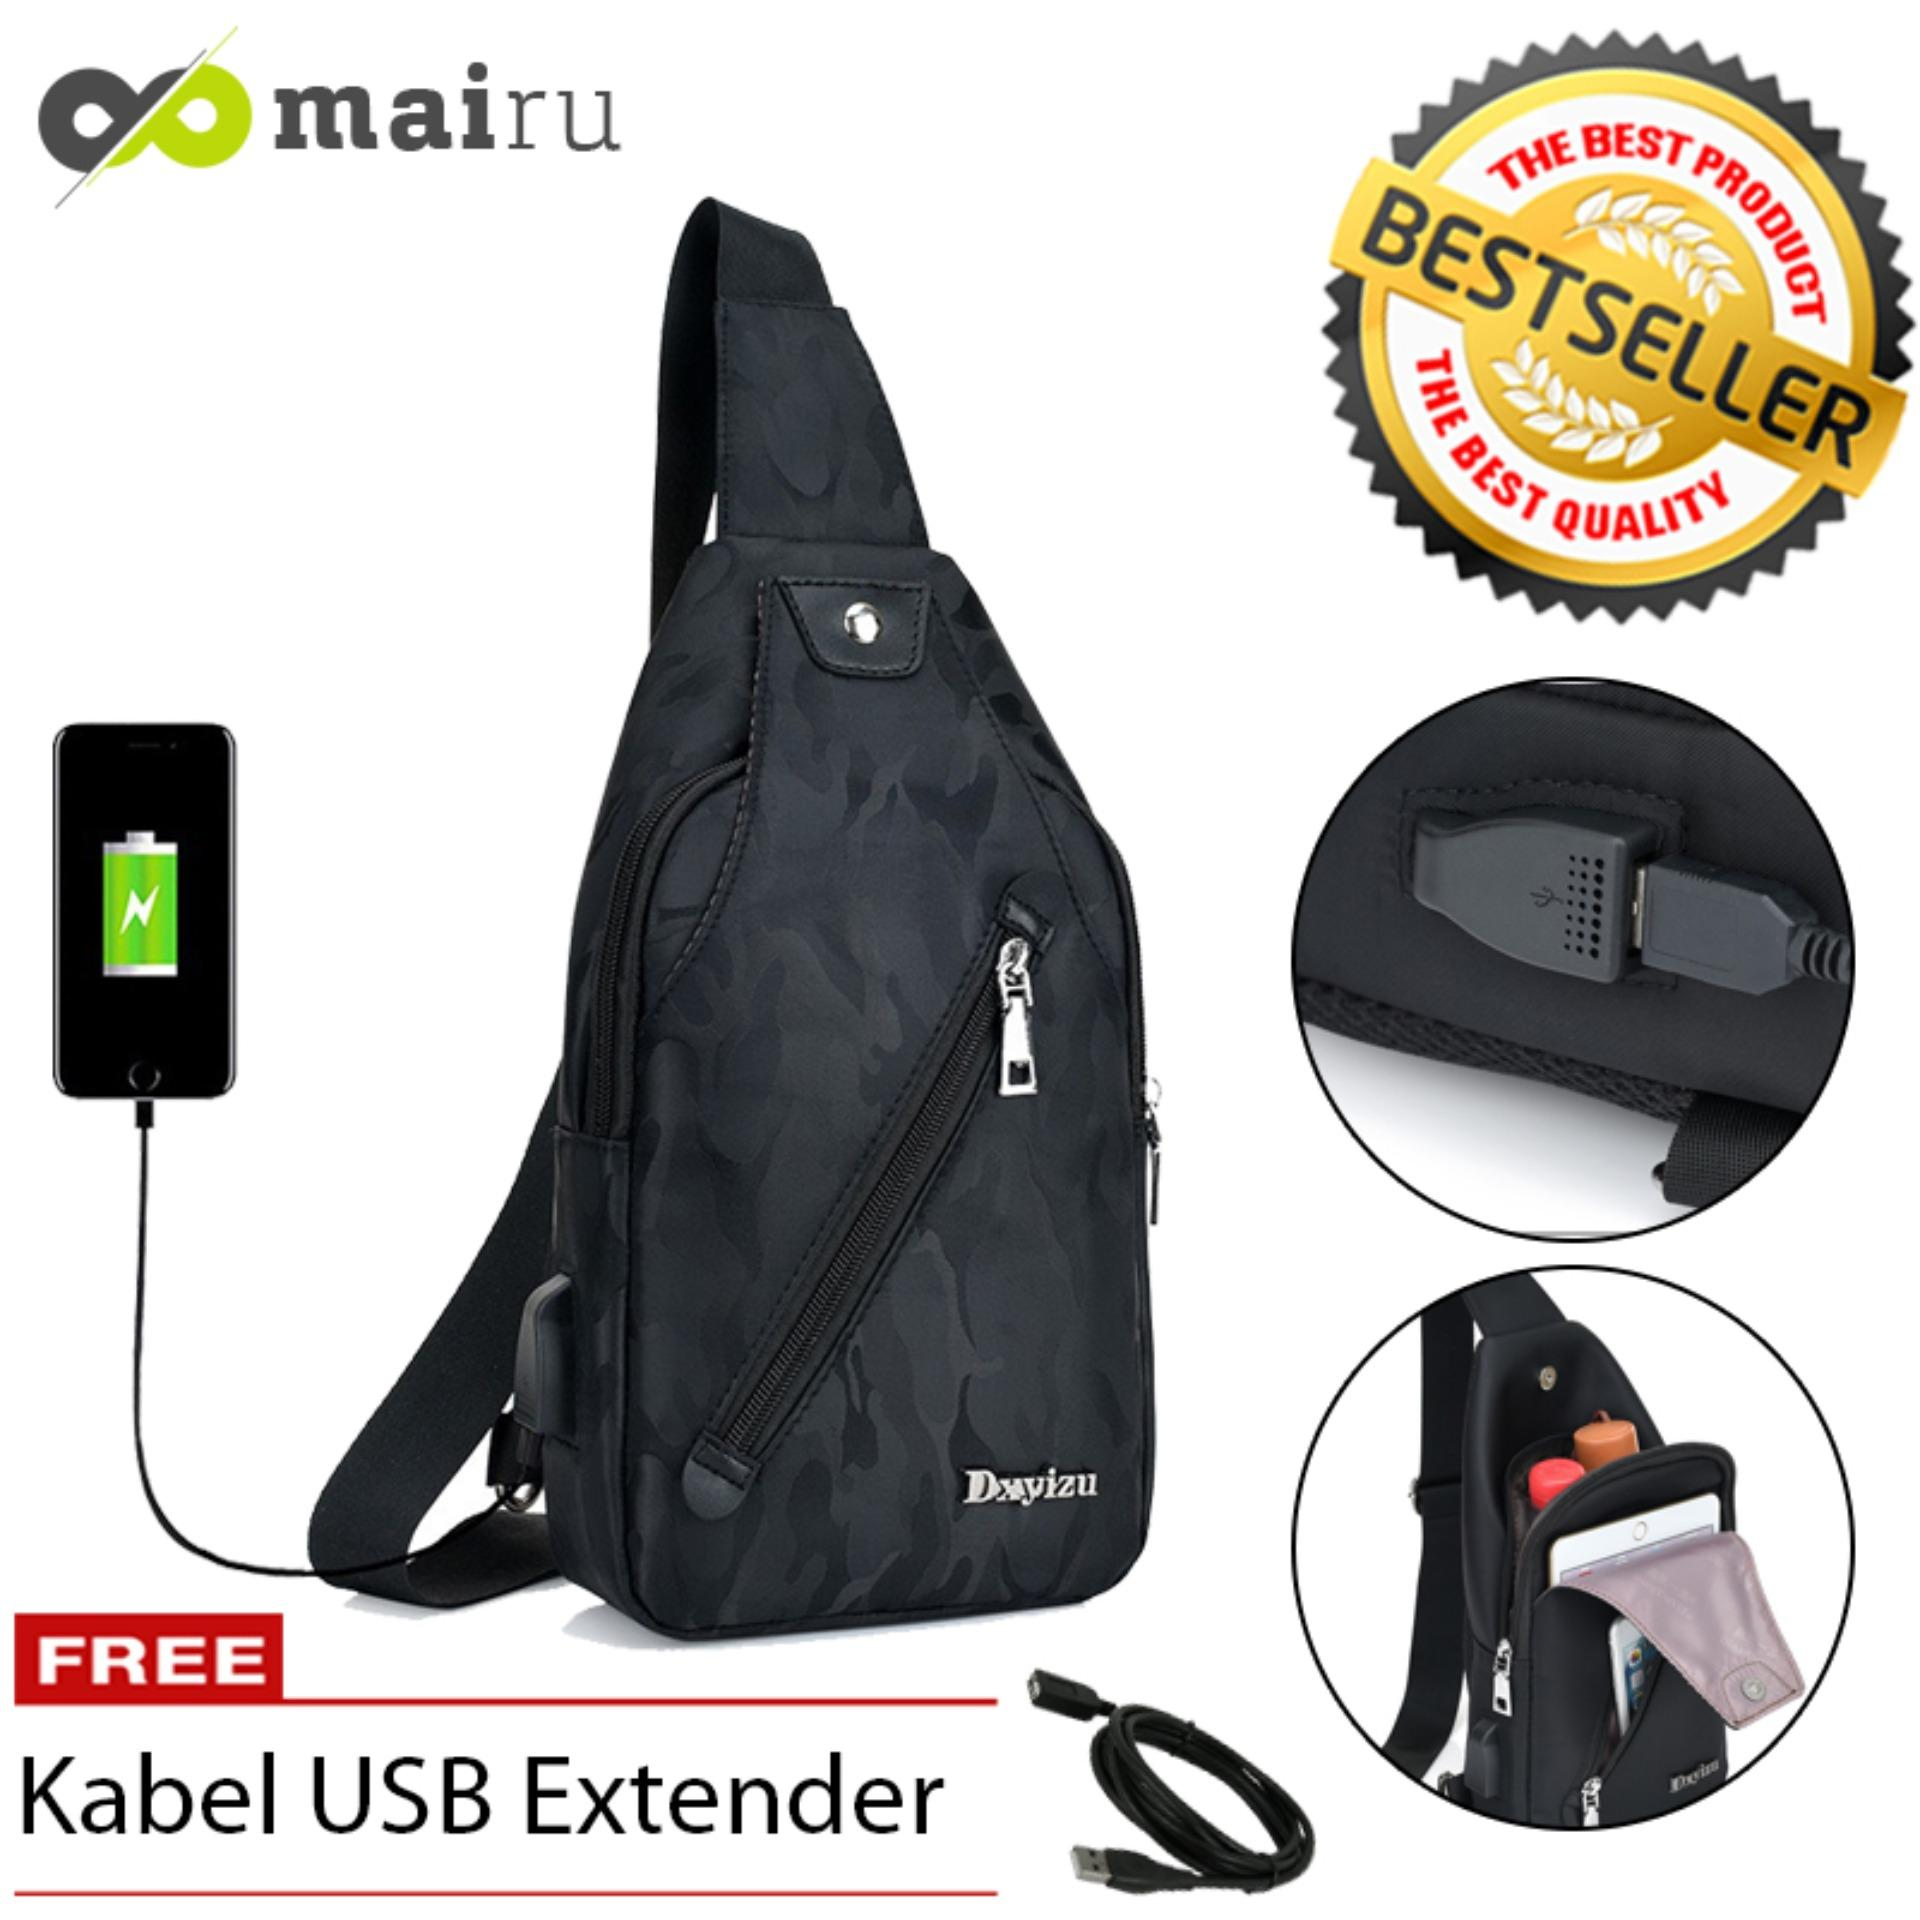 Harga Mairu Dxyizu 533 Tas Selempang Pria Sling Bag Cross Body With Usb Charger Support For Iphone Ipad Mini Xiaomi Samsung Tab Tablet 8 Anti Theft Mairu Indonesia